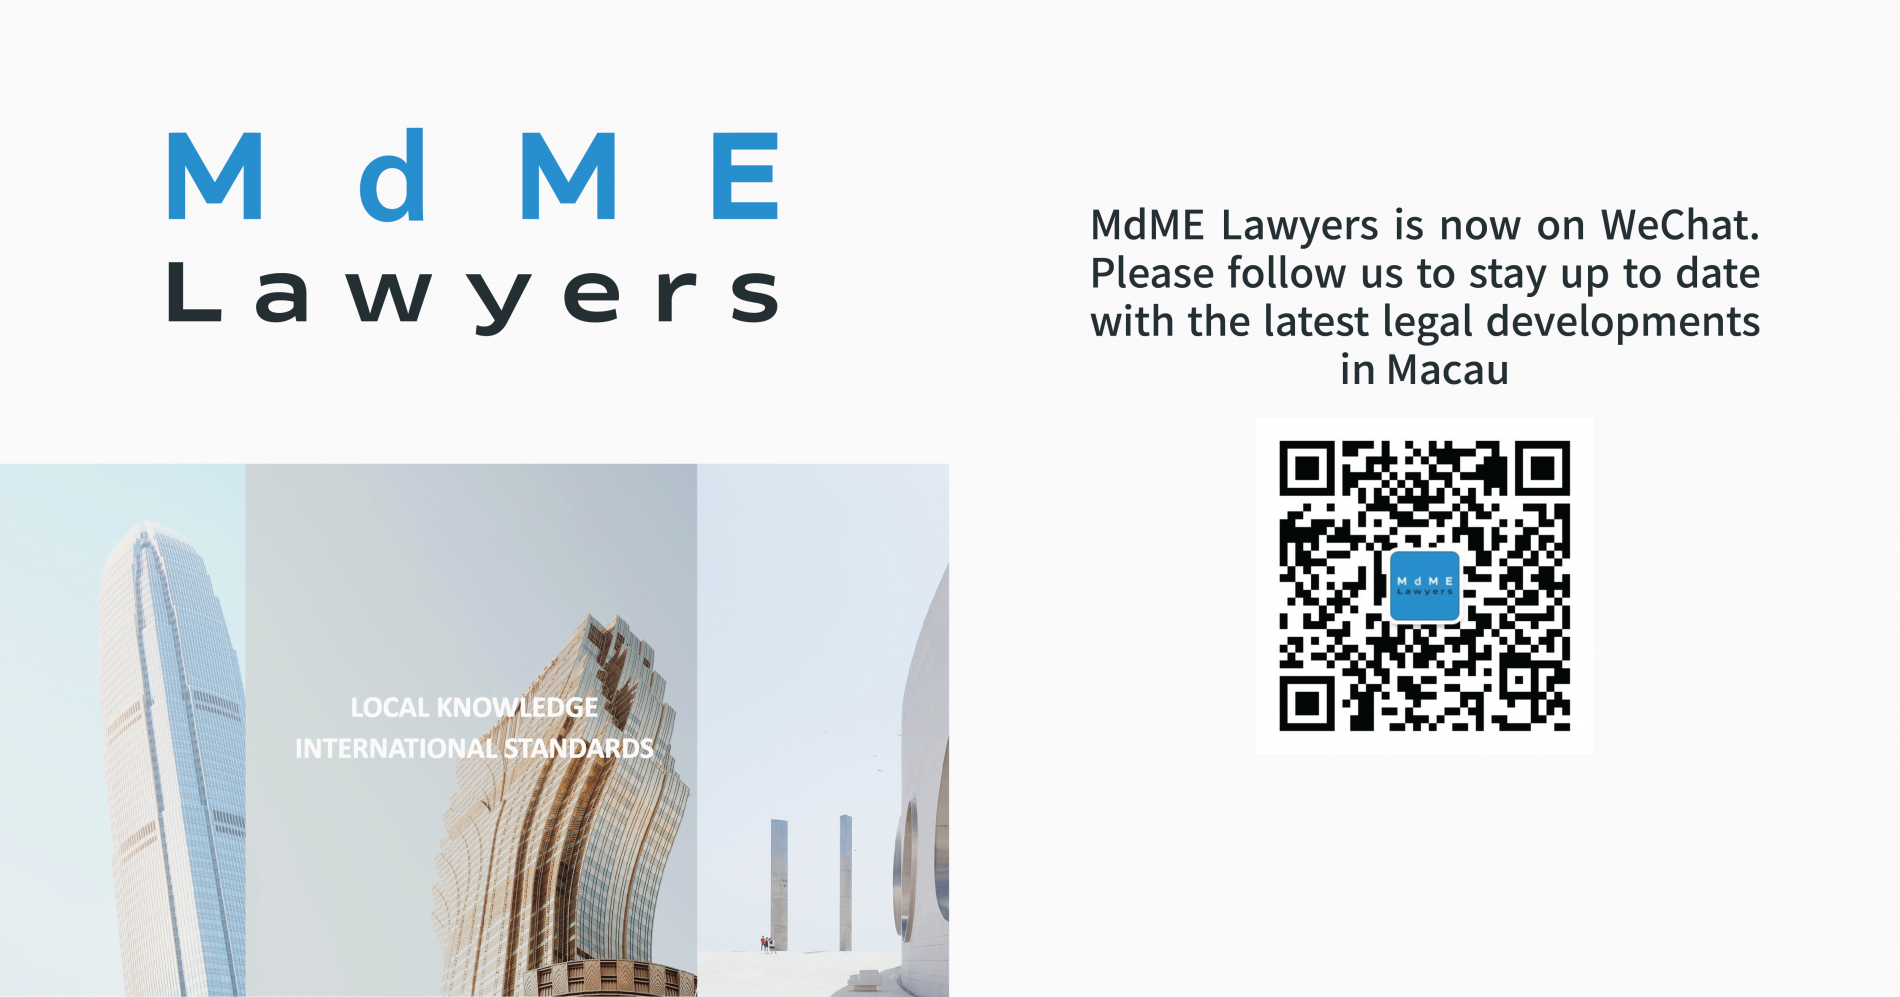 MdME Lawyers is now on WeChat!